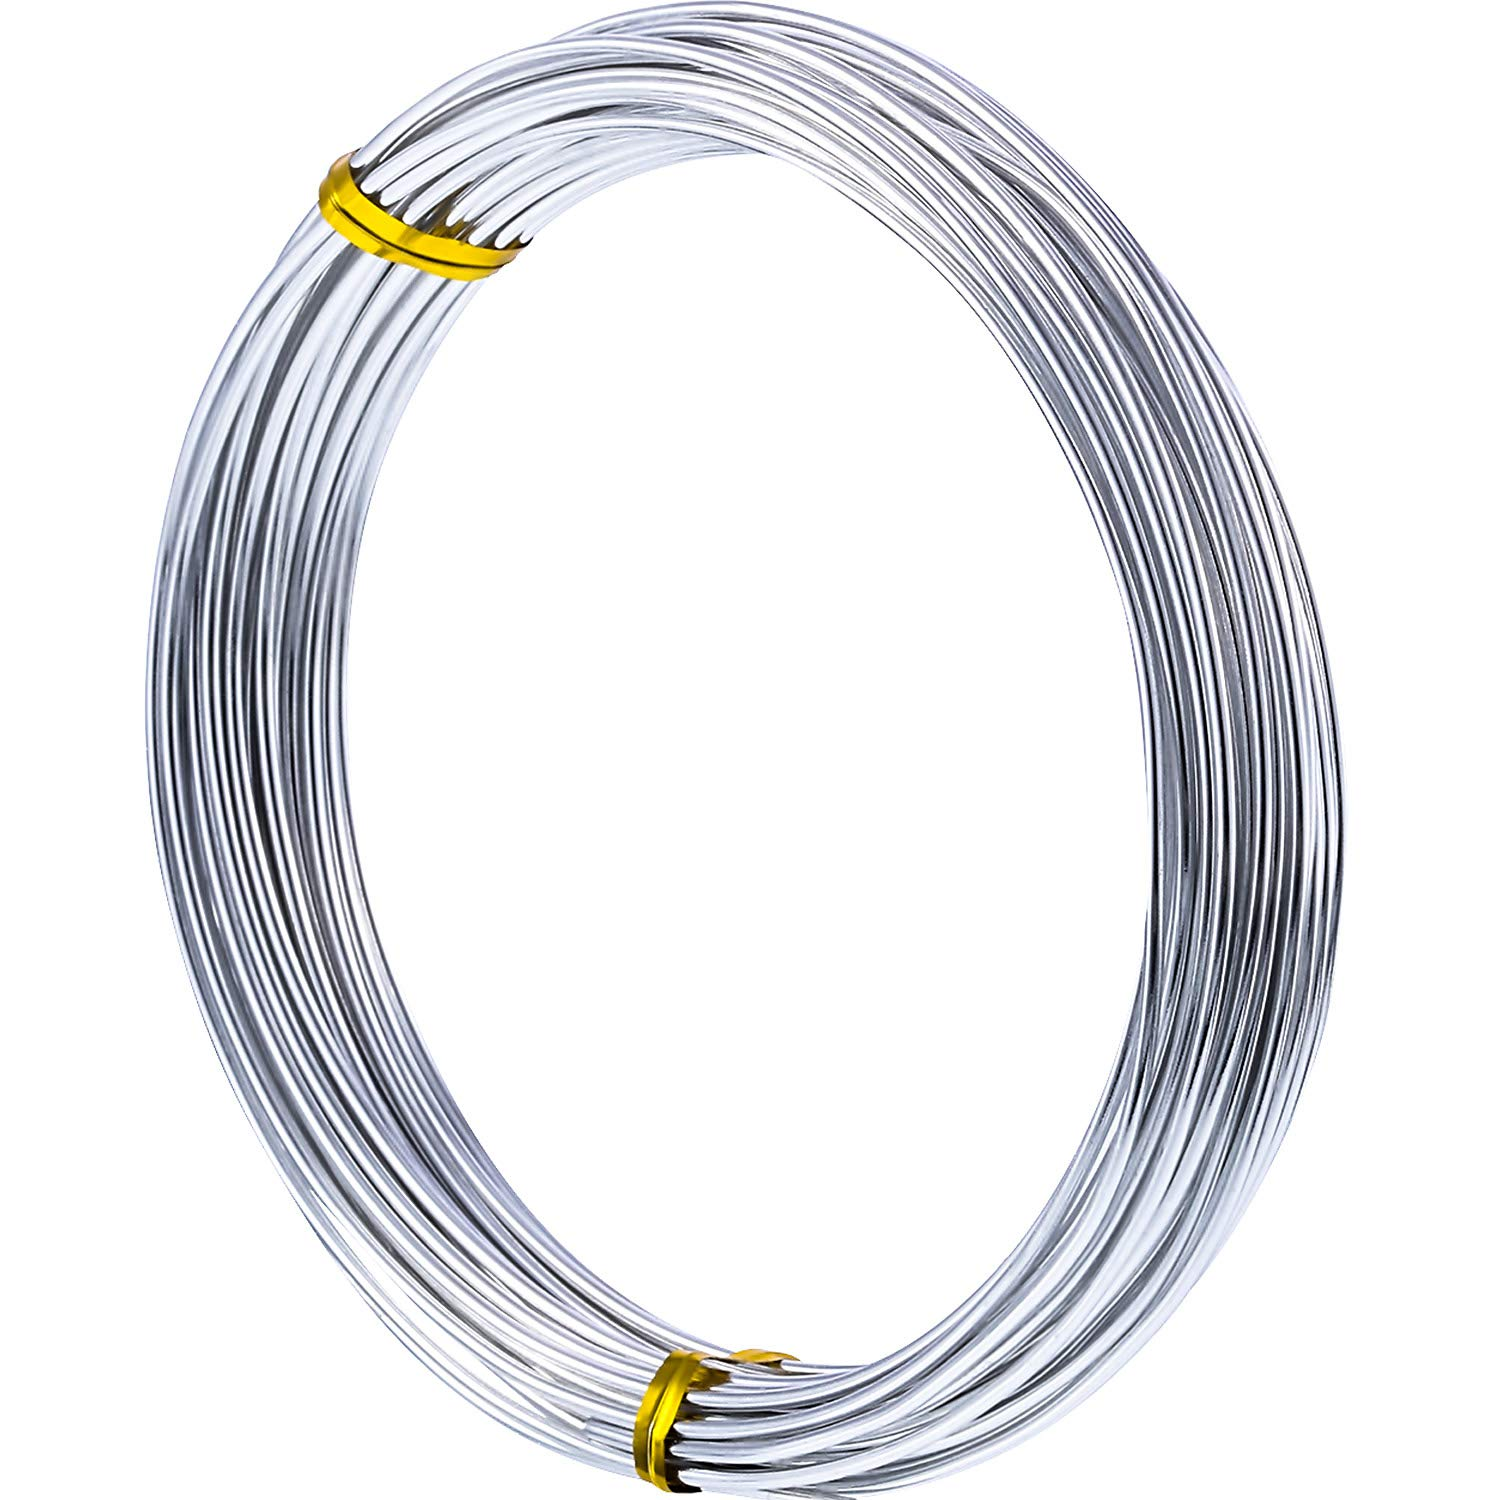 TecUnite 32.8 Feet Silver Aluminum Wire, Bendable Metal Craft Wire for Making Dolls Skeleton DIY Crafts (2mm Thickness)